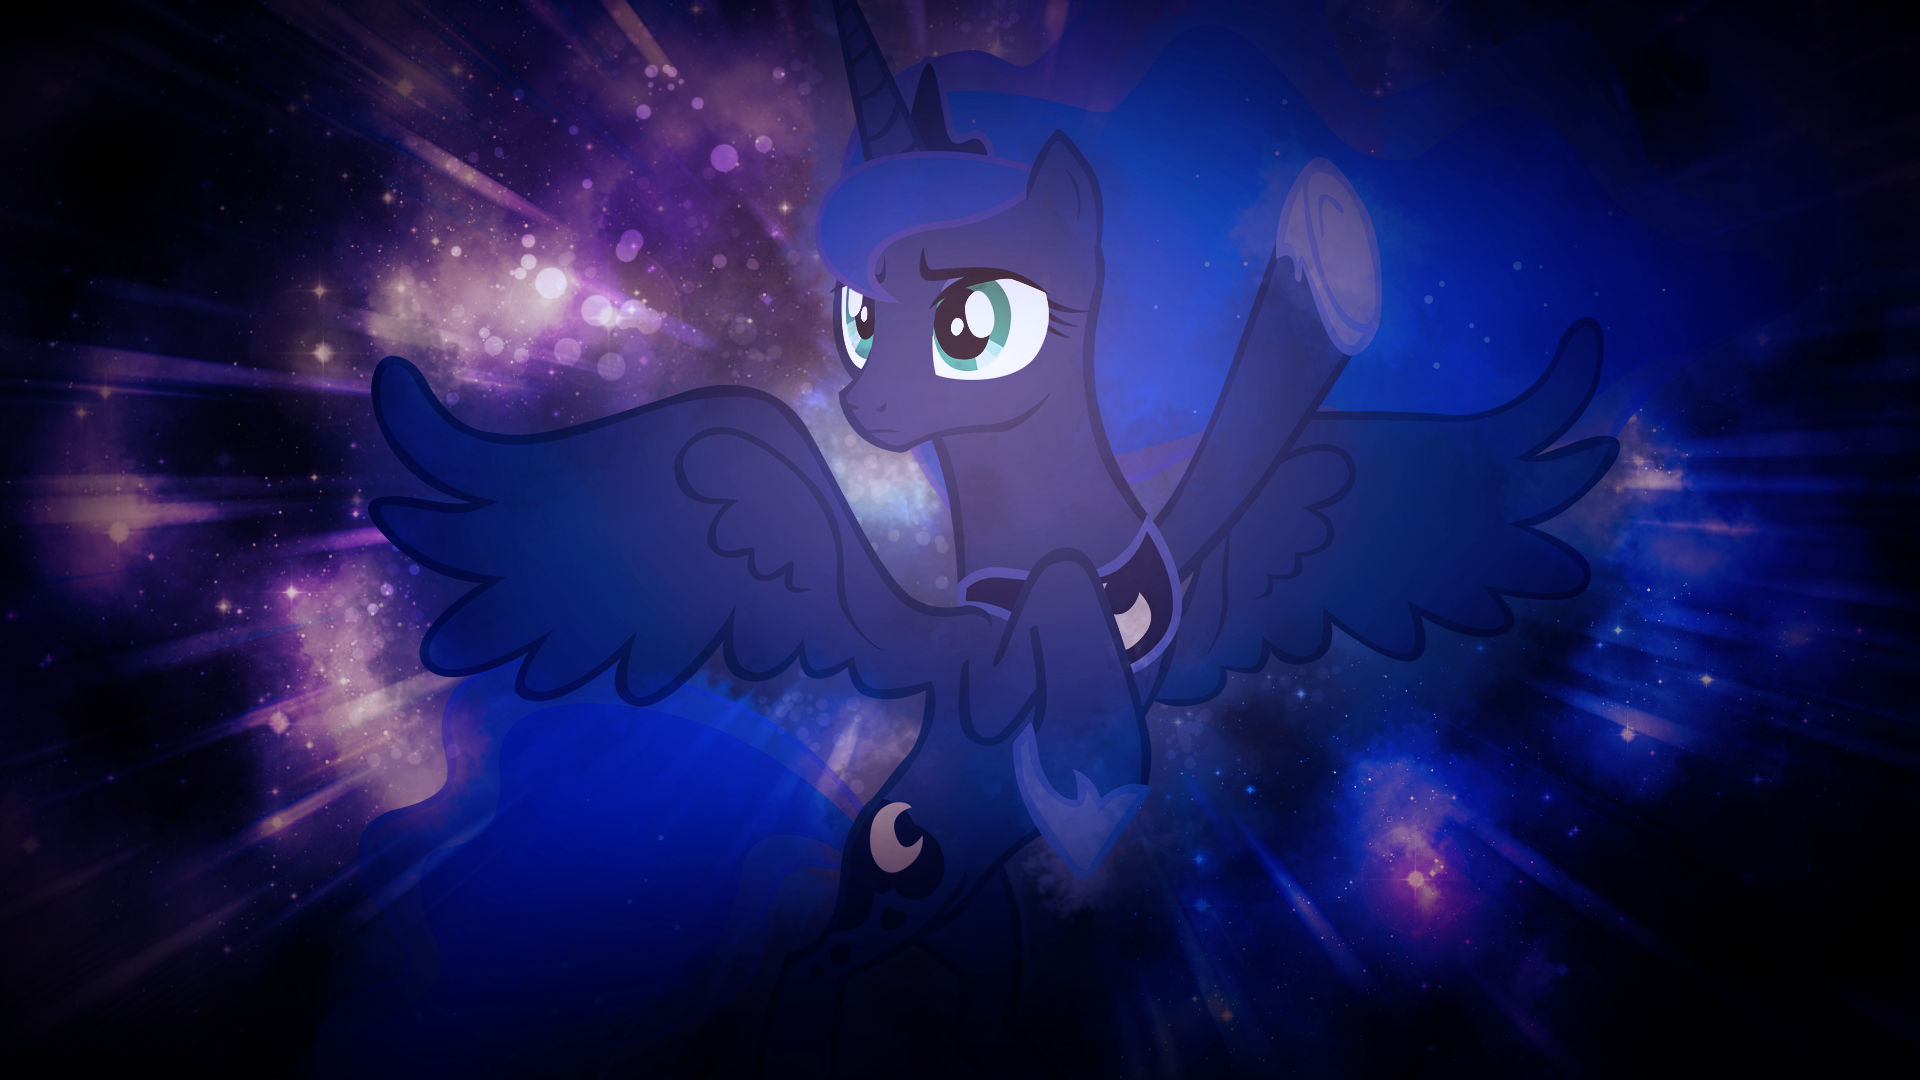 Luna in Space by SandwichDelta and Somepony